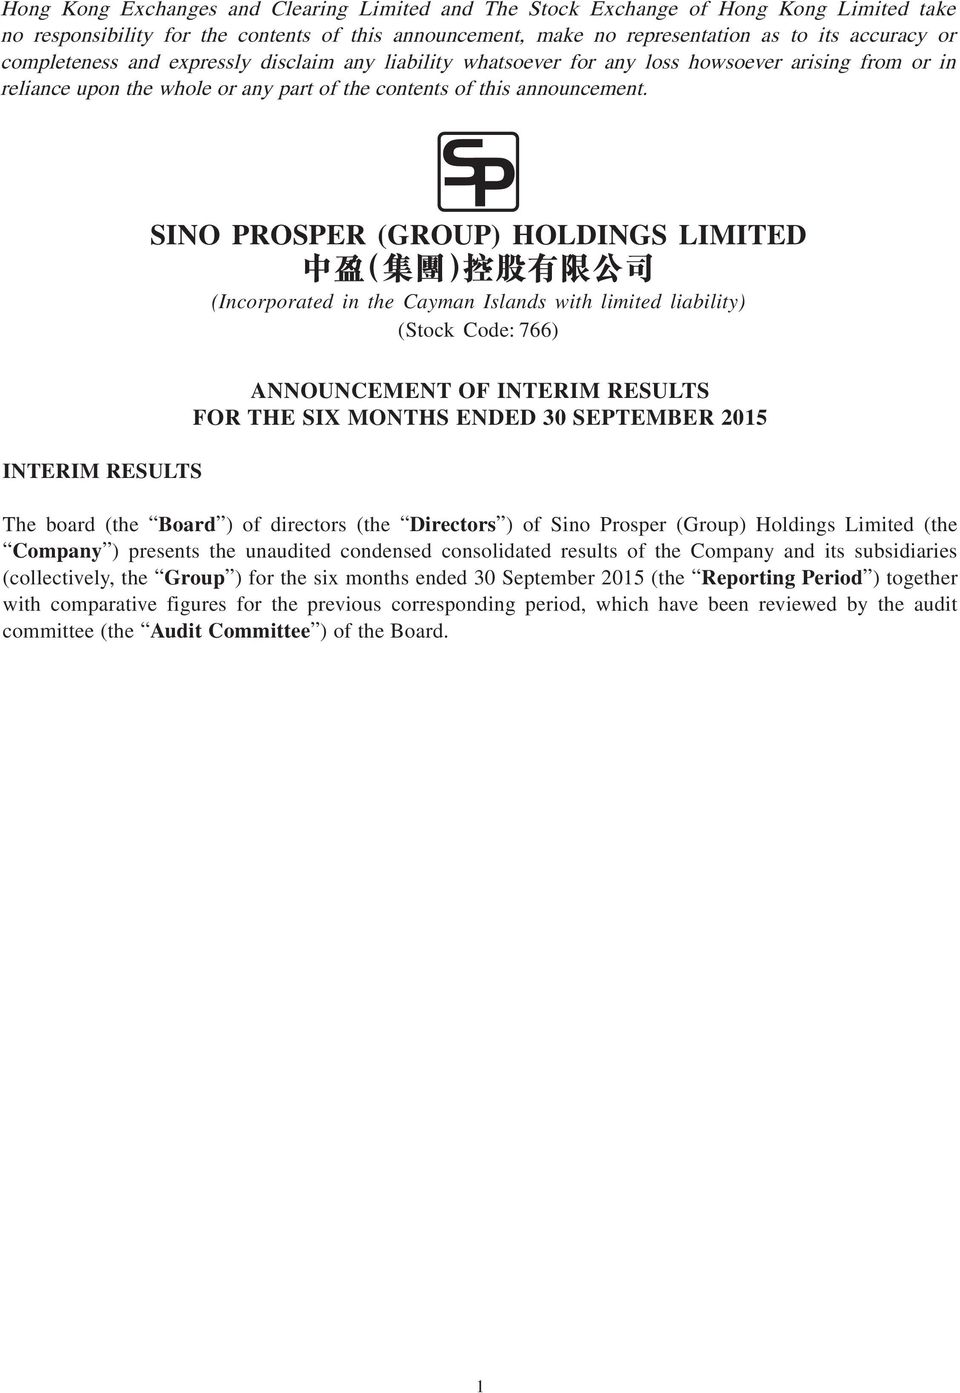 SINO PROSPER (GROUP) HOLDINGS LIMITED (Incorporated in the Cayman Islands with limited liability) (Stock Code: 766) INTERIM RESULTS ANNOUNCEMENT OF INTERIM RESULTS FOR THE SIX MONTHS ENDED 30